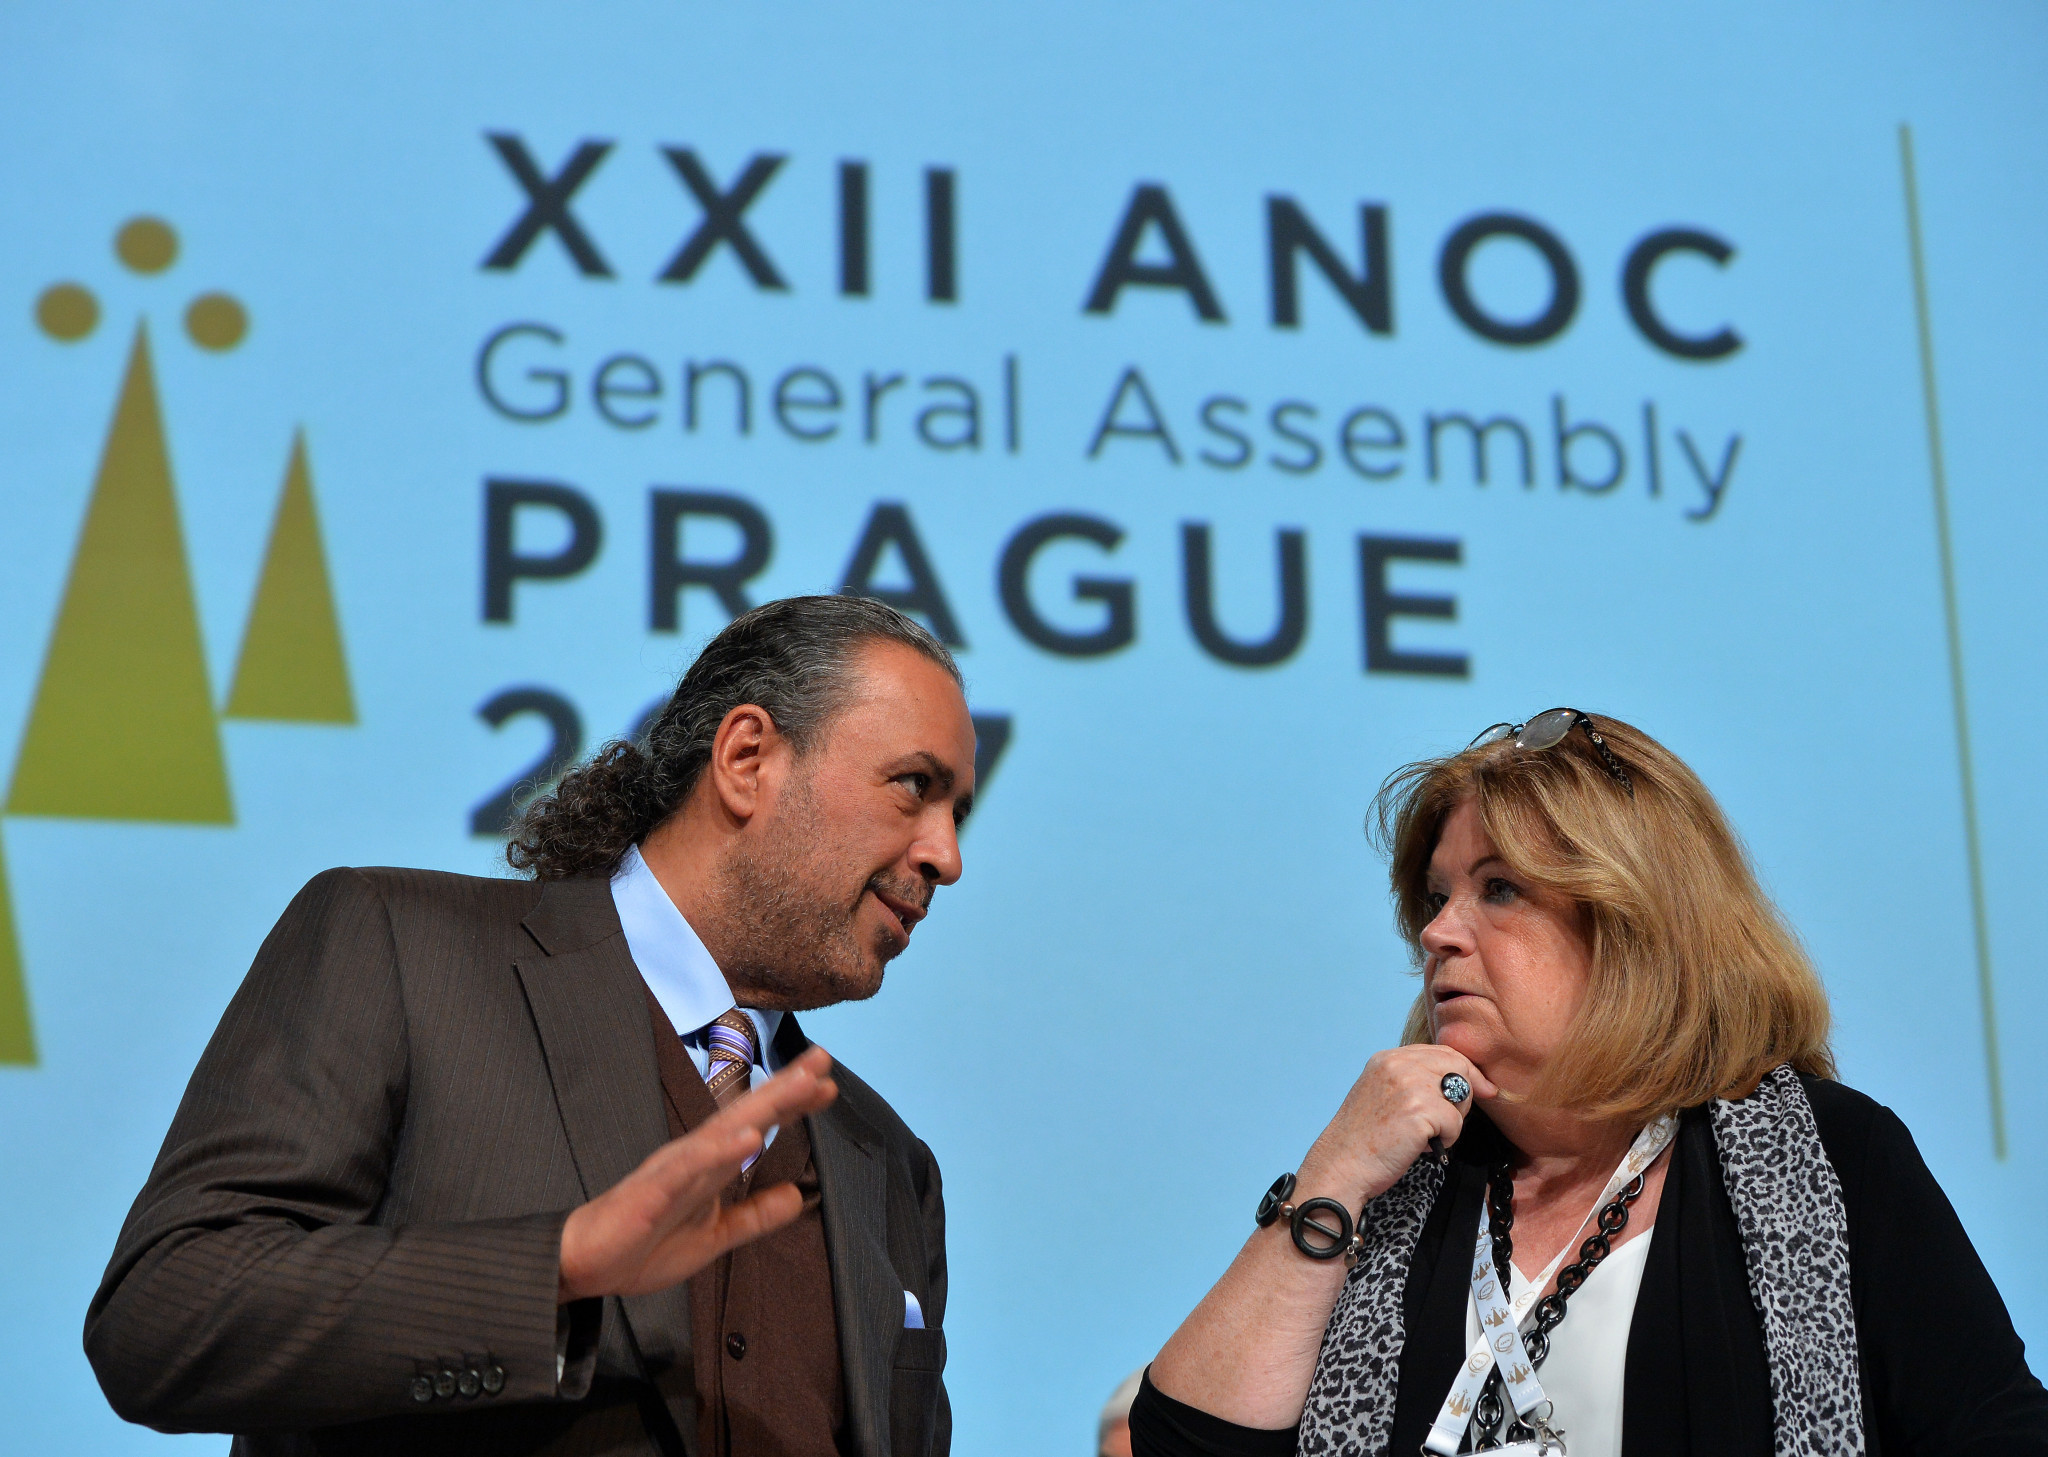 Sheikh Ahmad, left, pictured with ANOC secretary general Gunilla Lindberg, praised the success of the ANOC General Assembly in Prague ©Getty Images